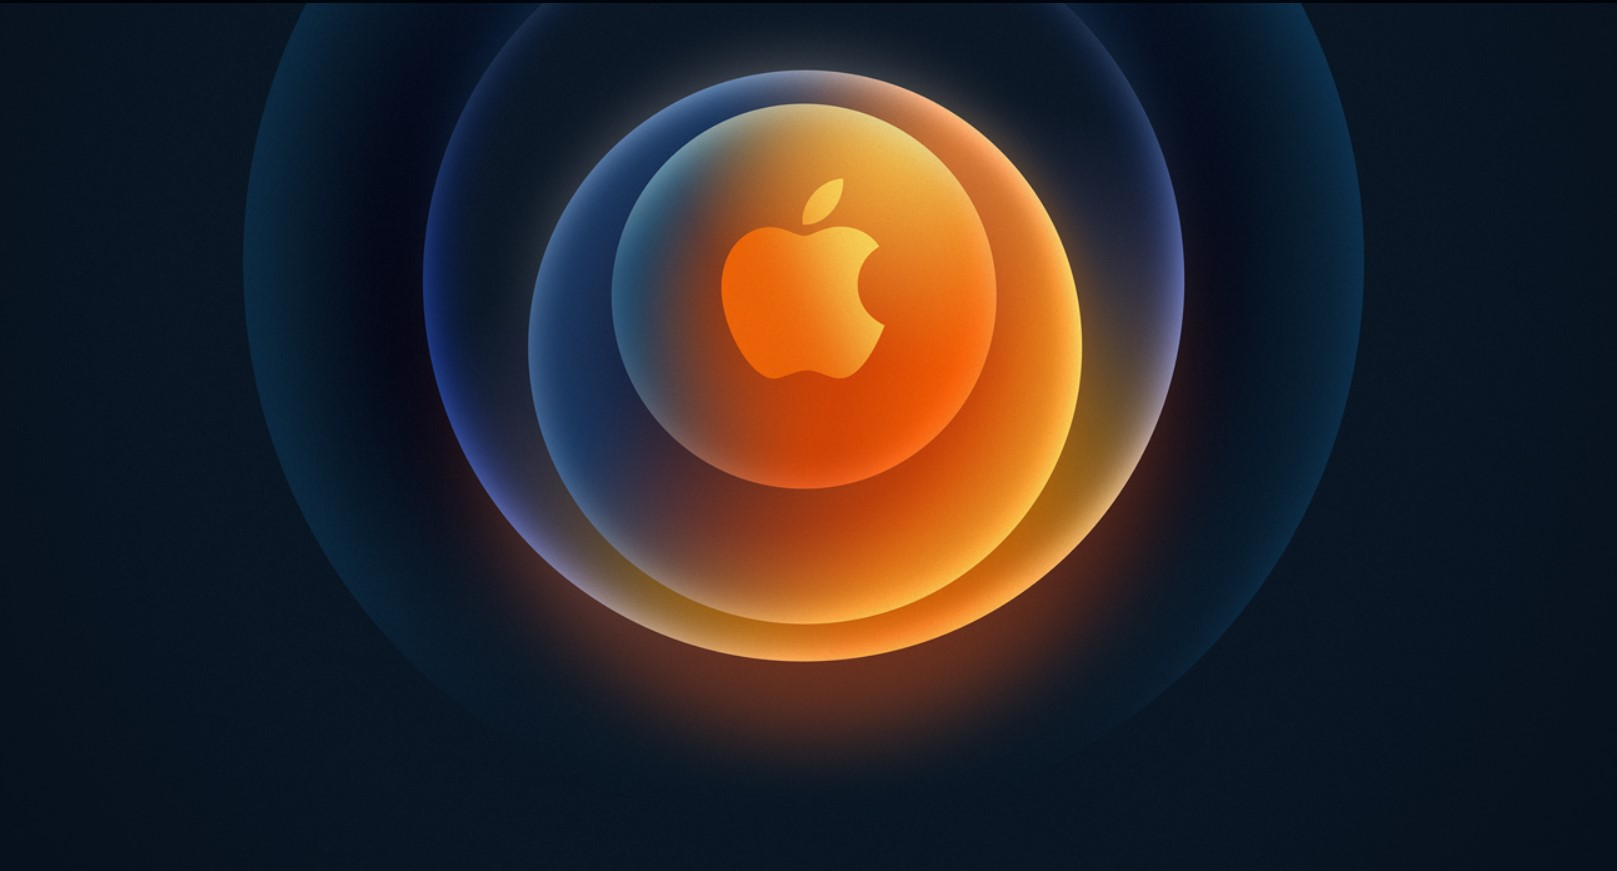 Apple iPhone 12 wallpapers and Apple Event 2020 wallpapers